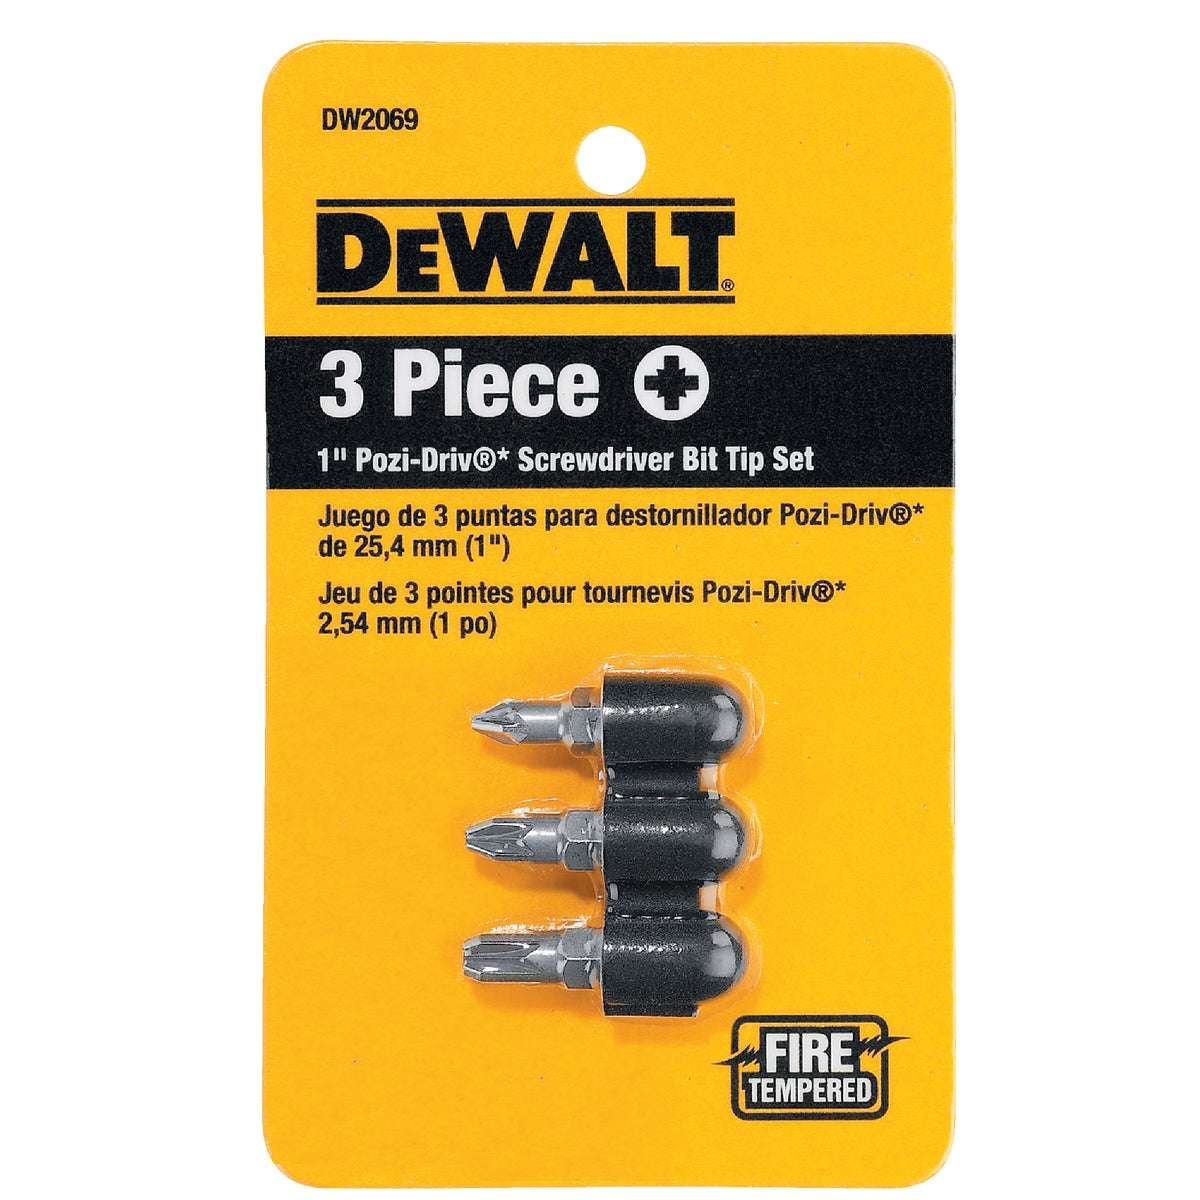 3PC POZIDRIV DRIVE SET - DW2069 by DeWalt